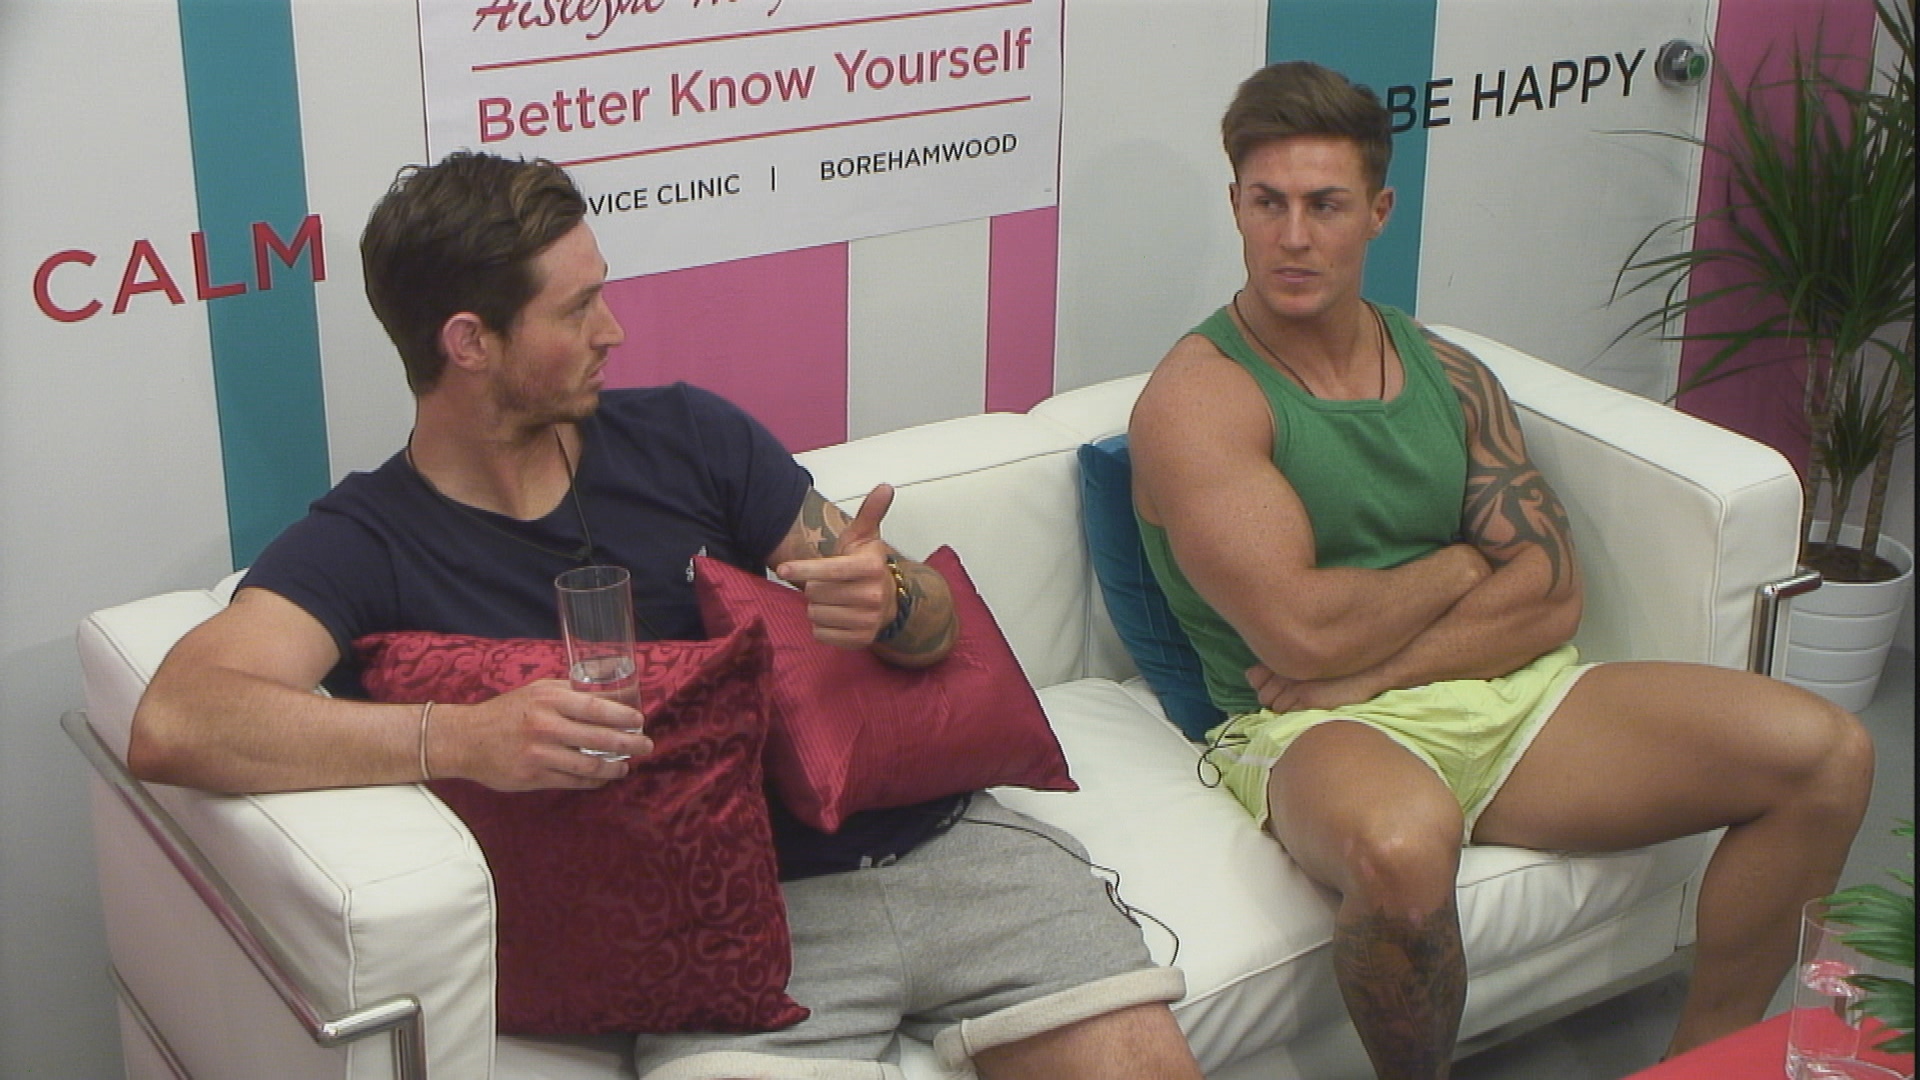 Day 54: Danny and Marc clash in latest Big Brother row